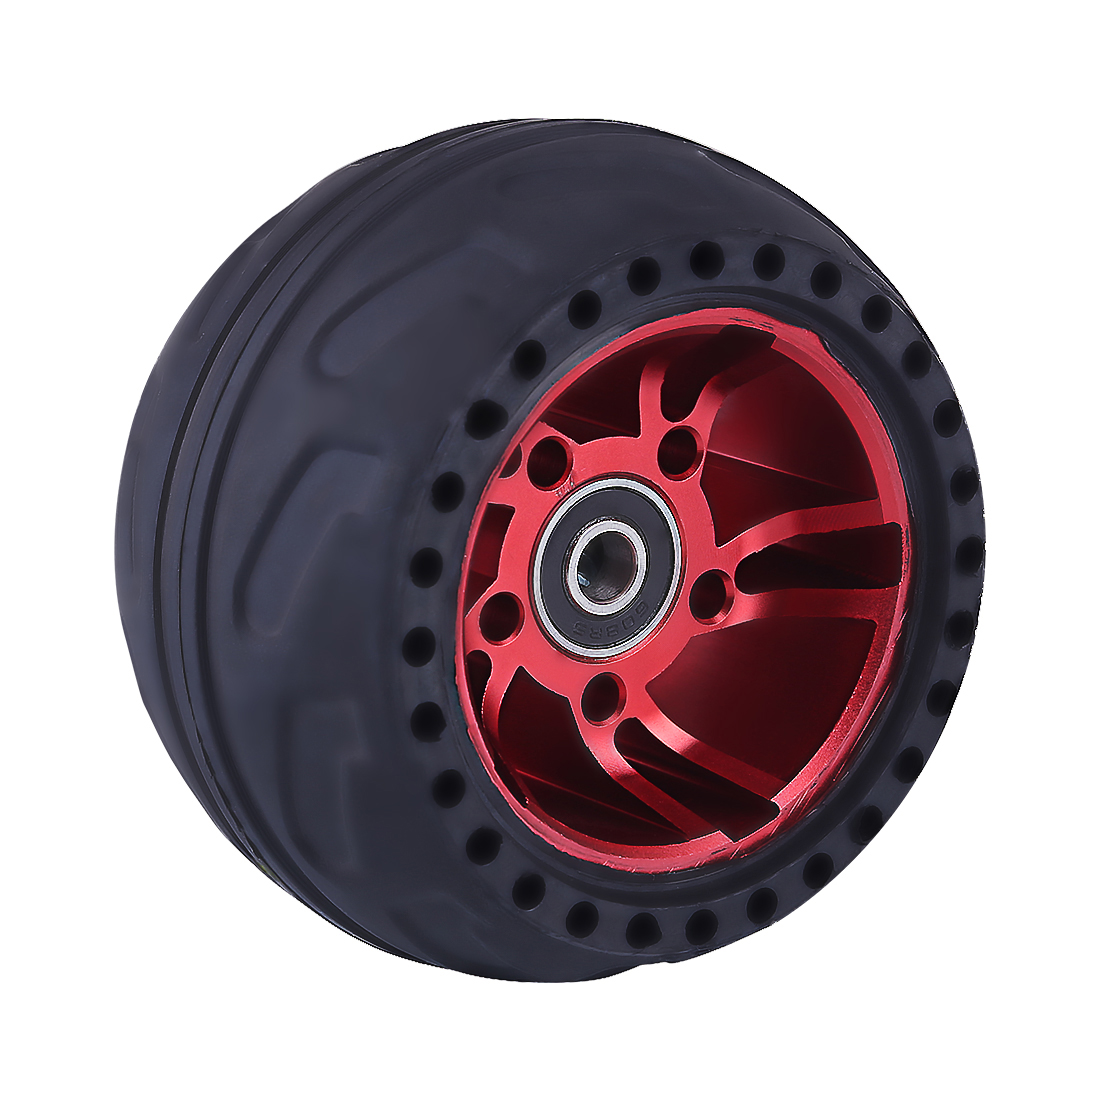 105LMH All Terrain Wheel Rubber Tire Accessories For Skateboard Outdoor Sports Fun - Red